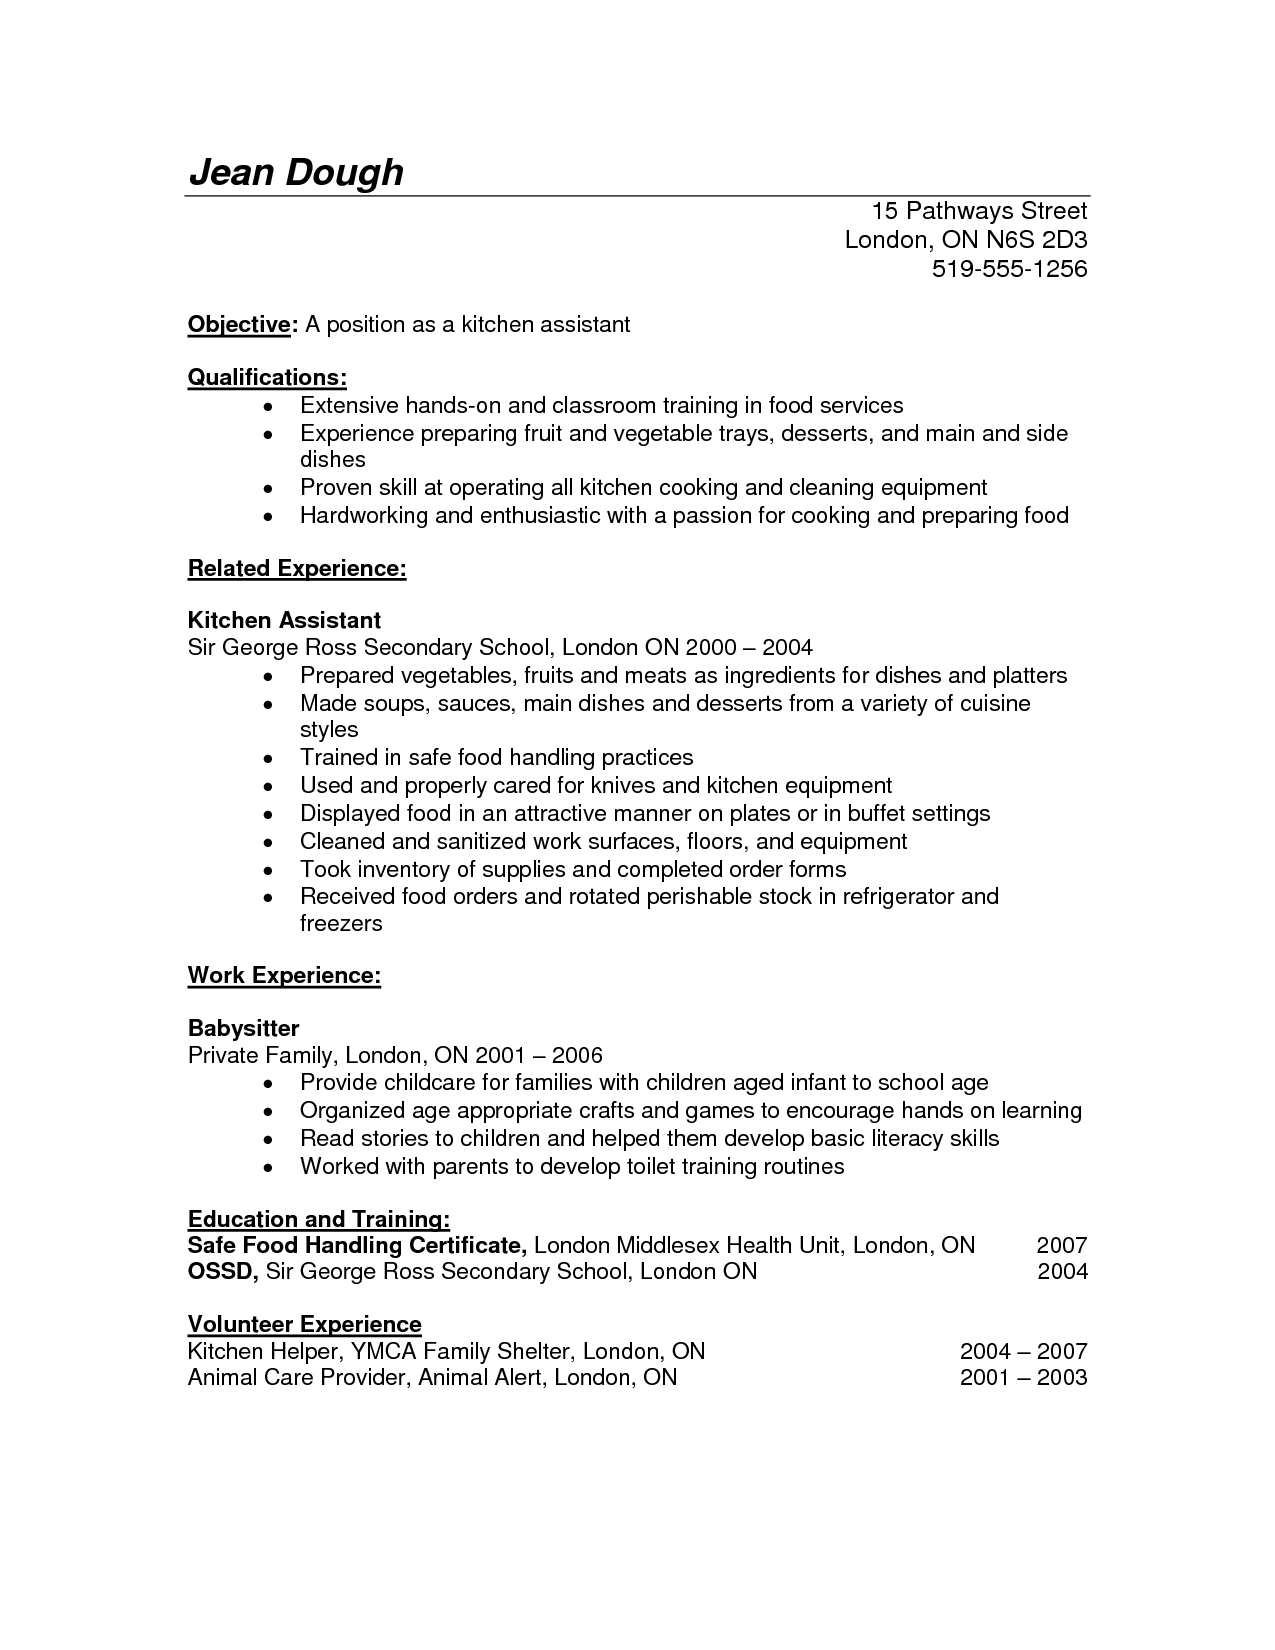 Cashier Resume Skills Food Services Cover Letter Resume Assistant For  Cashier Grocery .